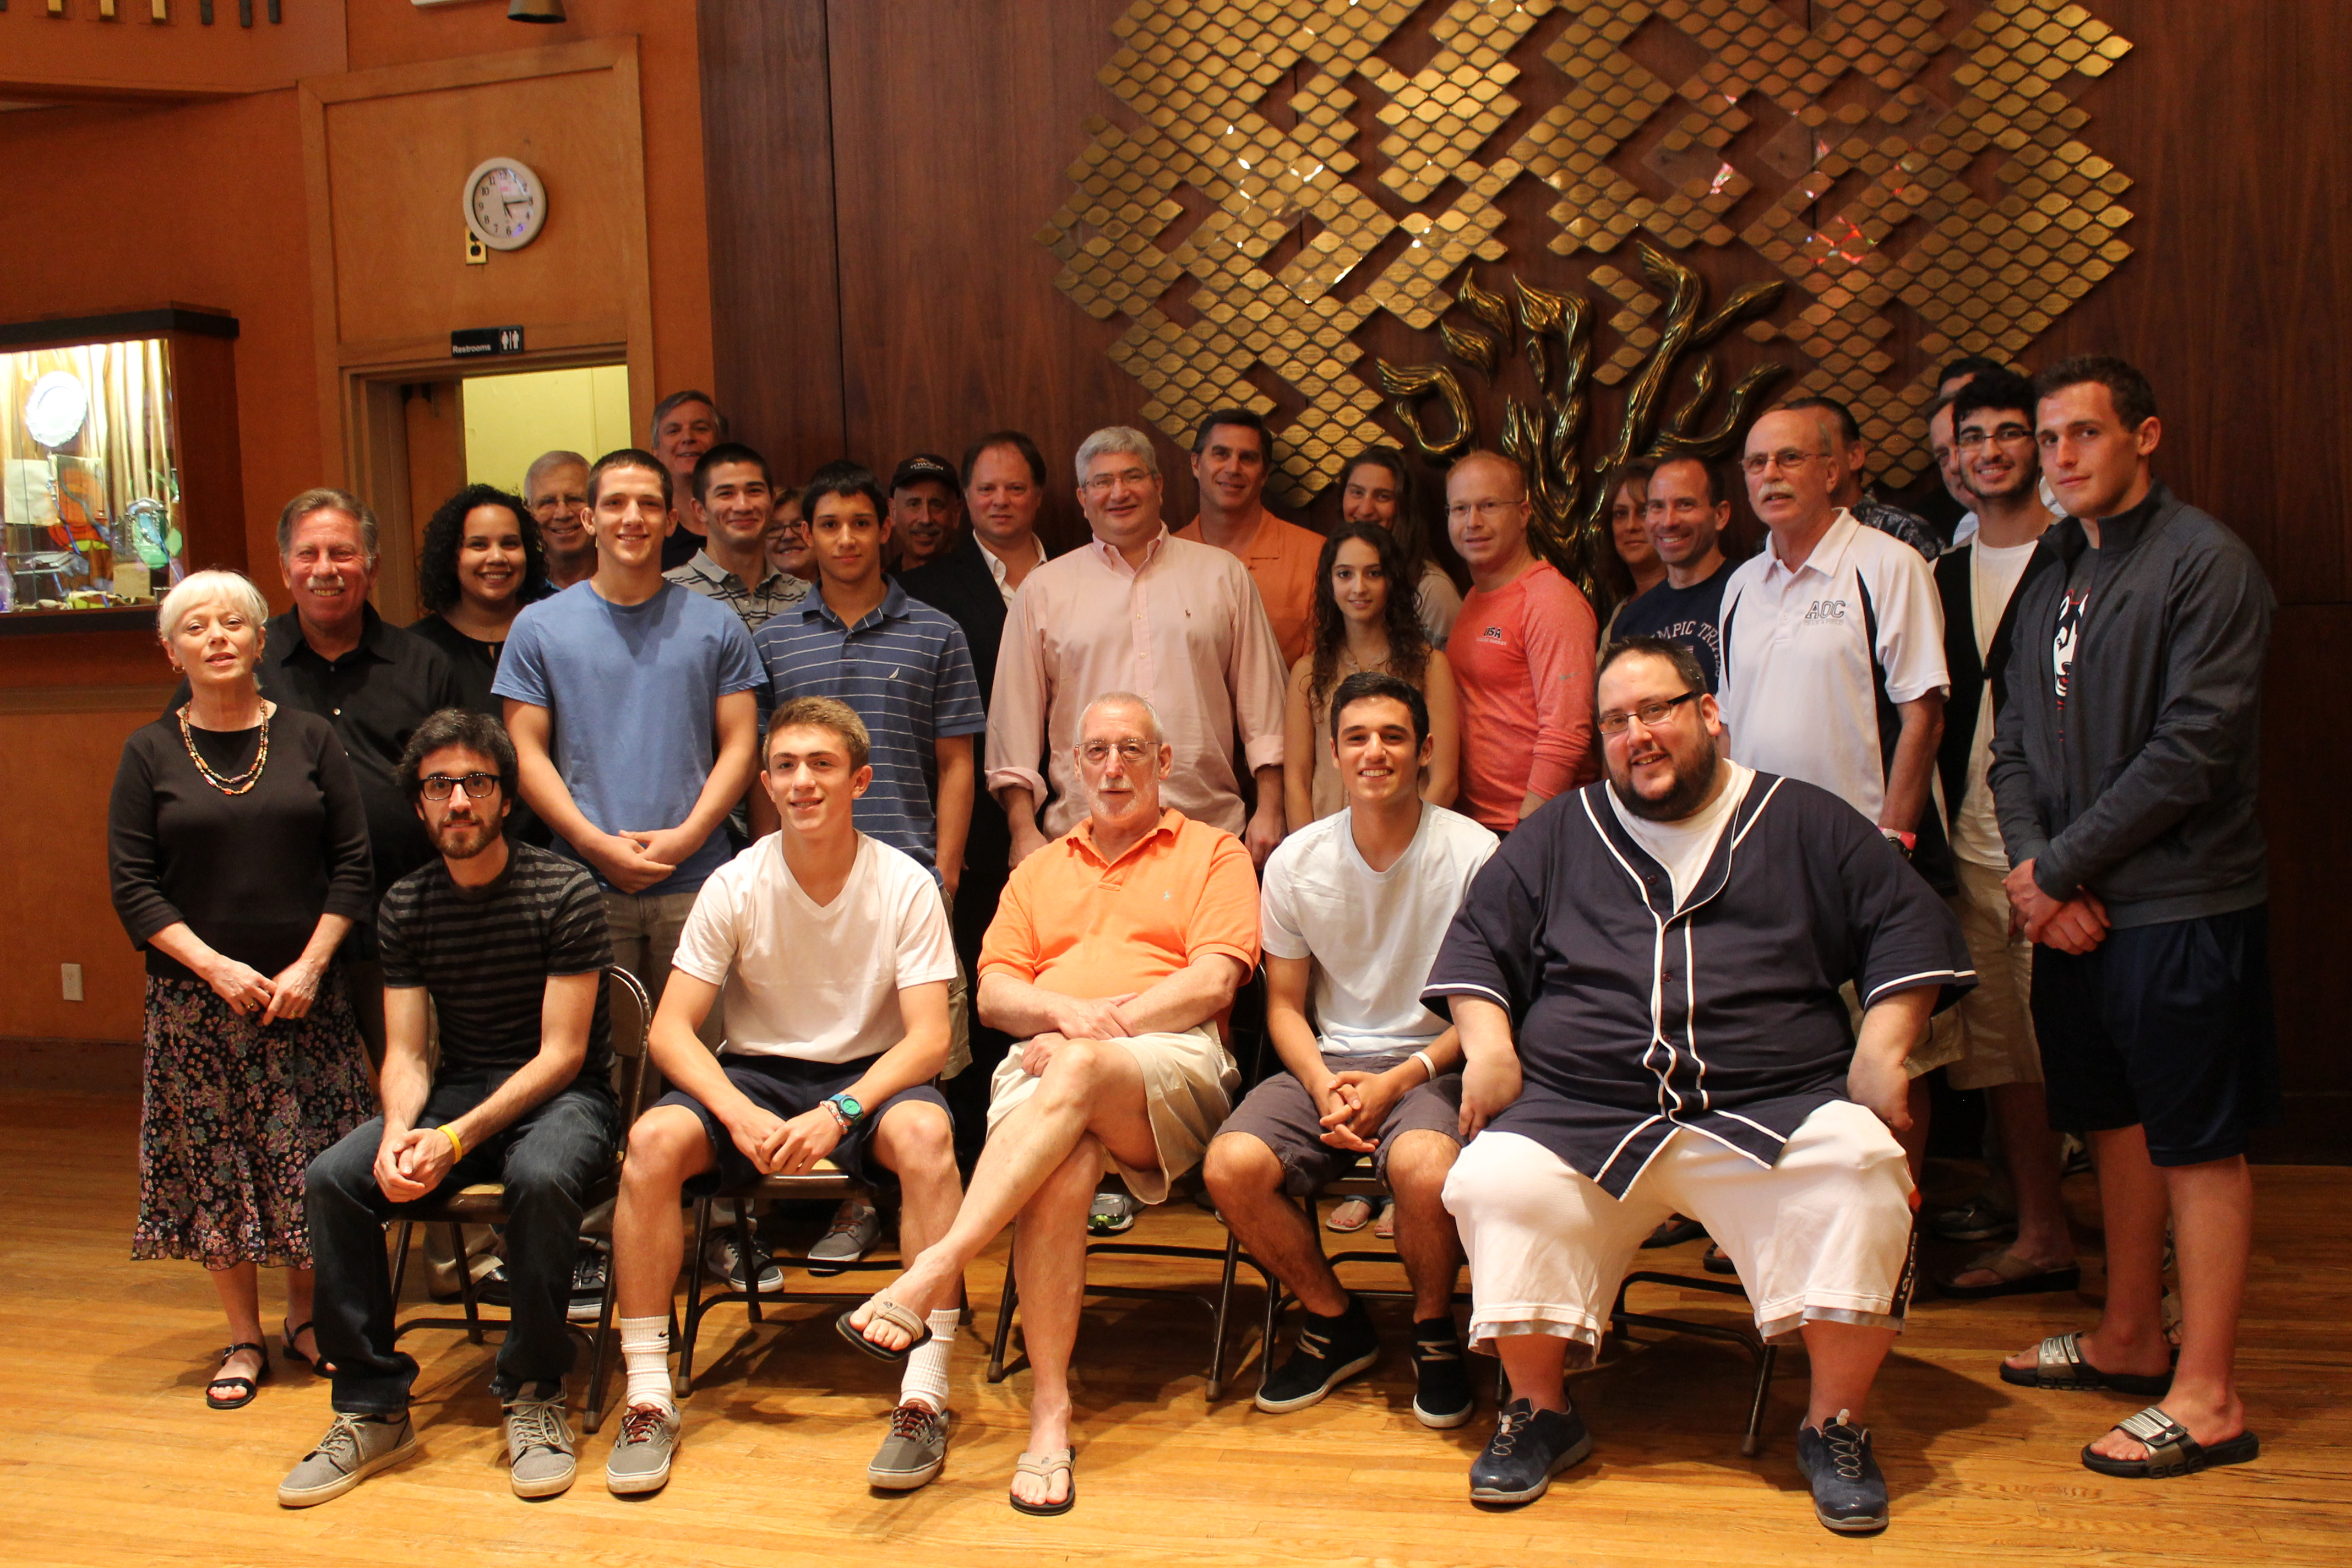 maccabiah local athletes 2013.JPG